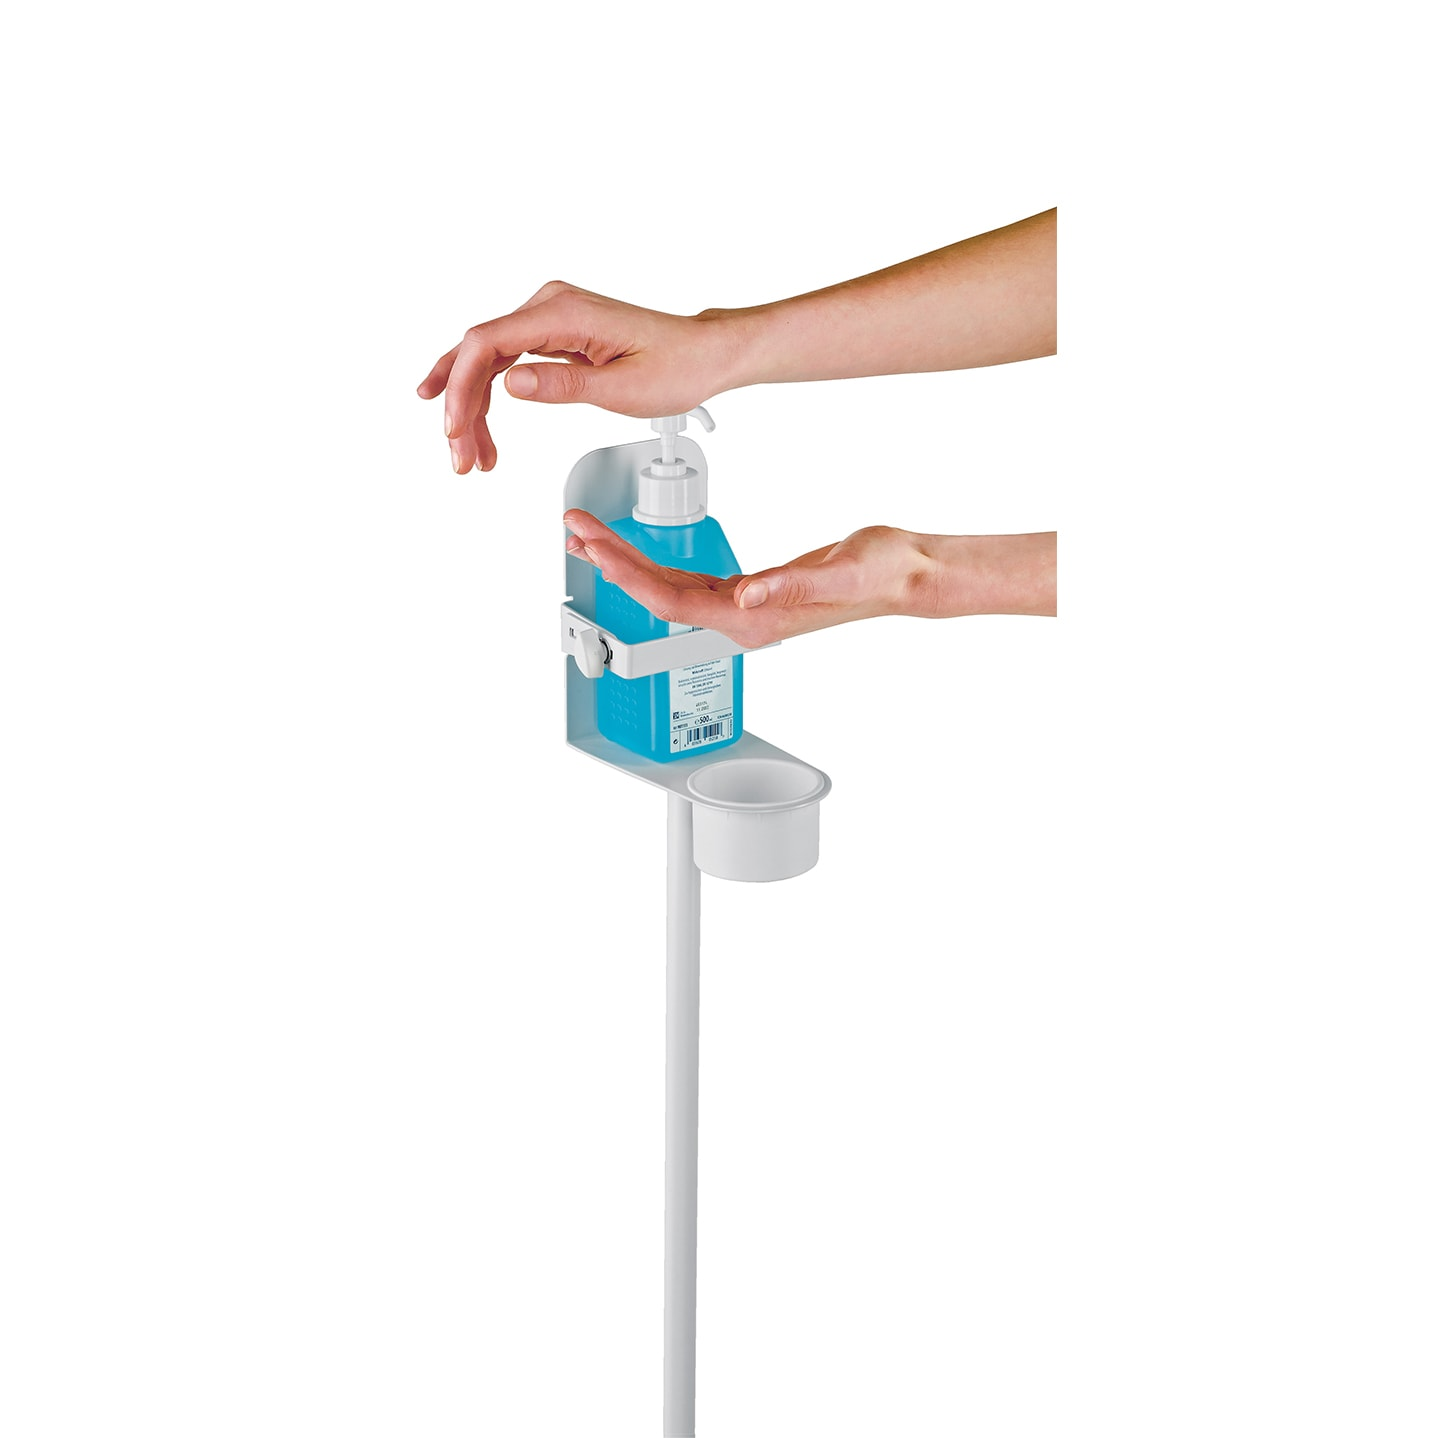 KM80310 - Disinfectant stand with bracket